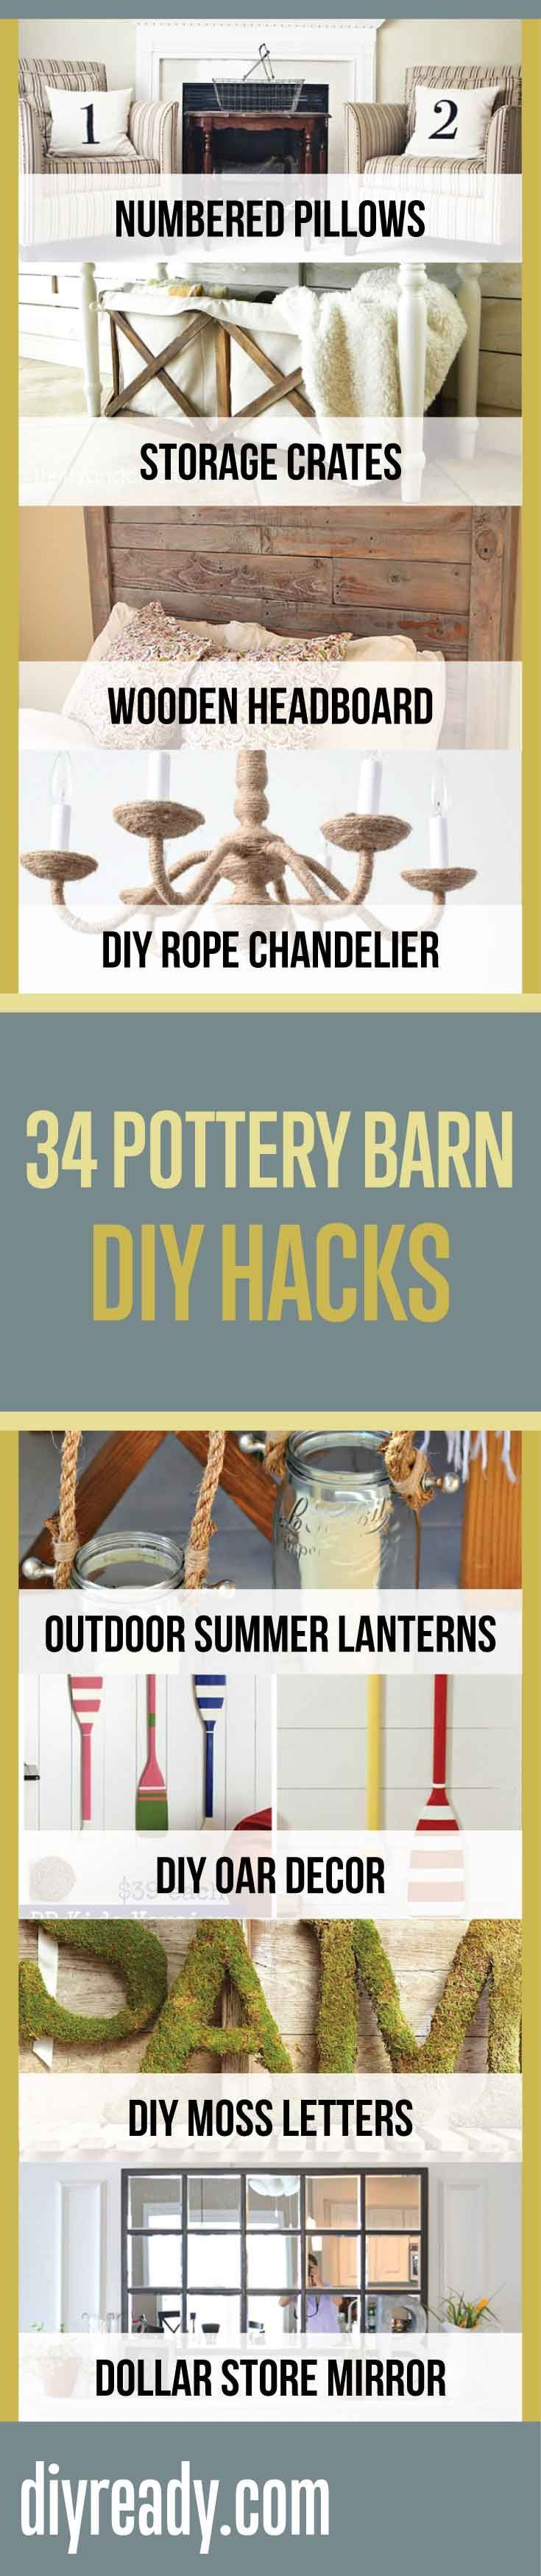 Pottery barn trash can - 17 Best Ideas About Pottery Barn Hacks On Pinterest Pottery Barn Colors Entryway Storage And Pottery Barn Shelves